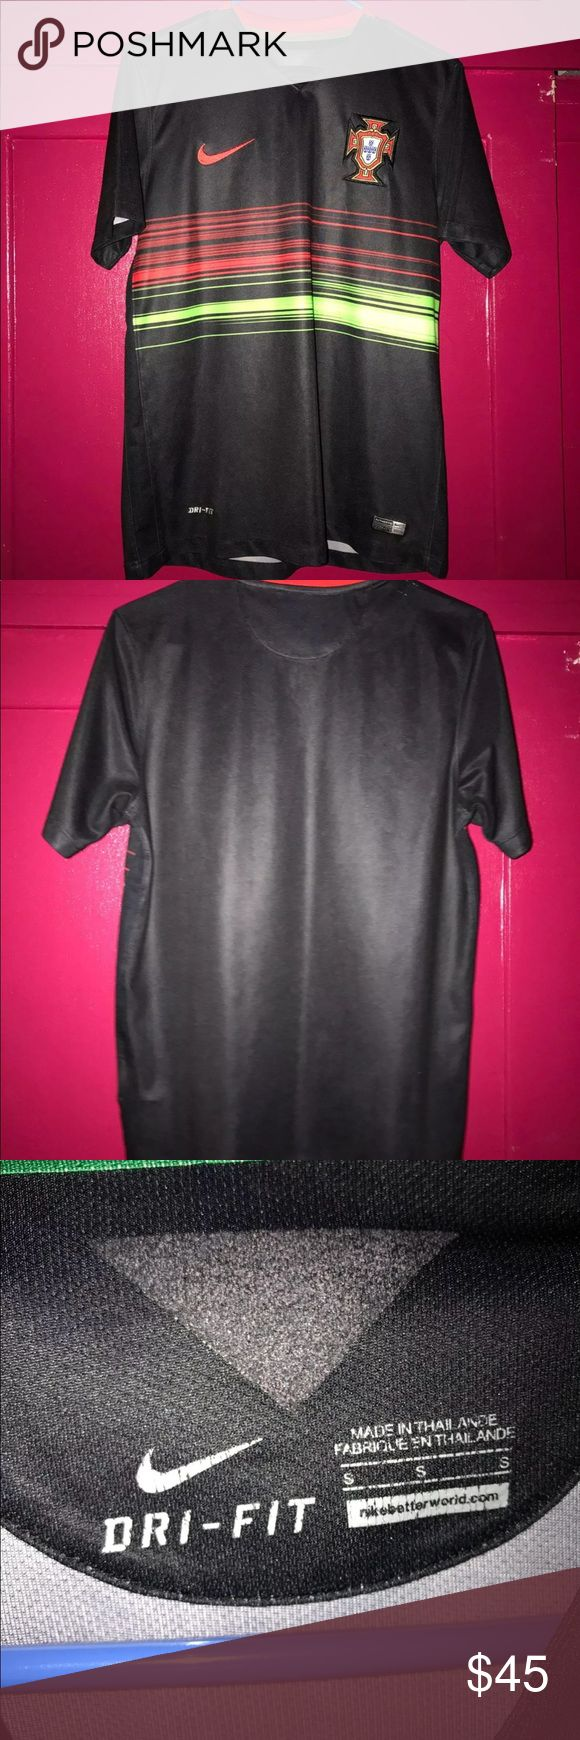 Nike Portugal Dri-FIT Jersey New, no tags. Never been worn. Nike Shirts Tees - Short Sleeve